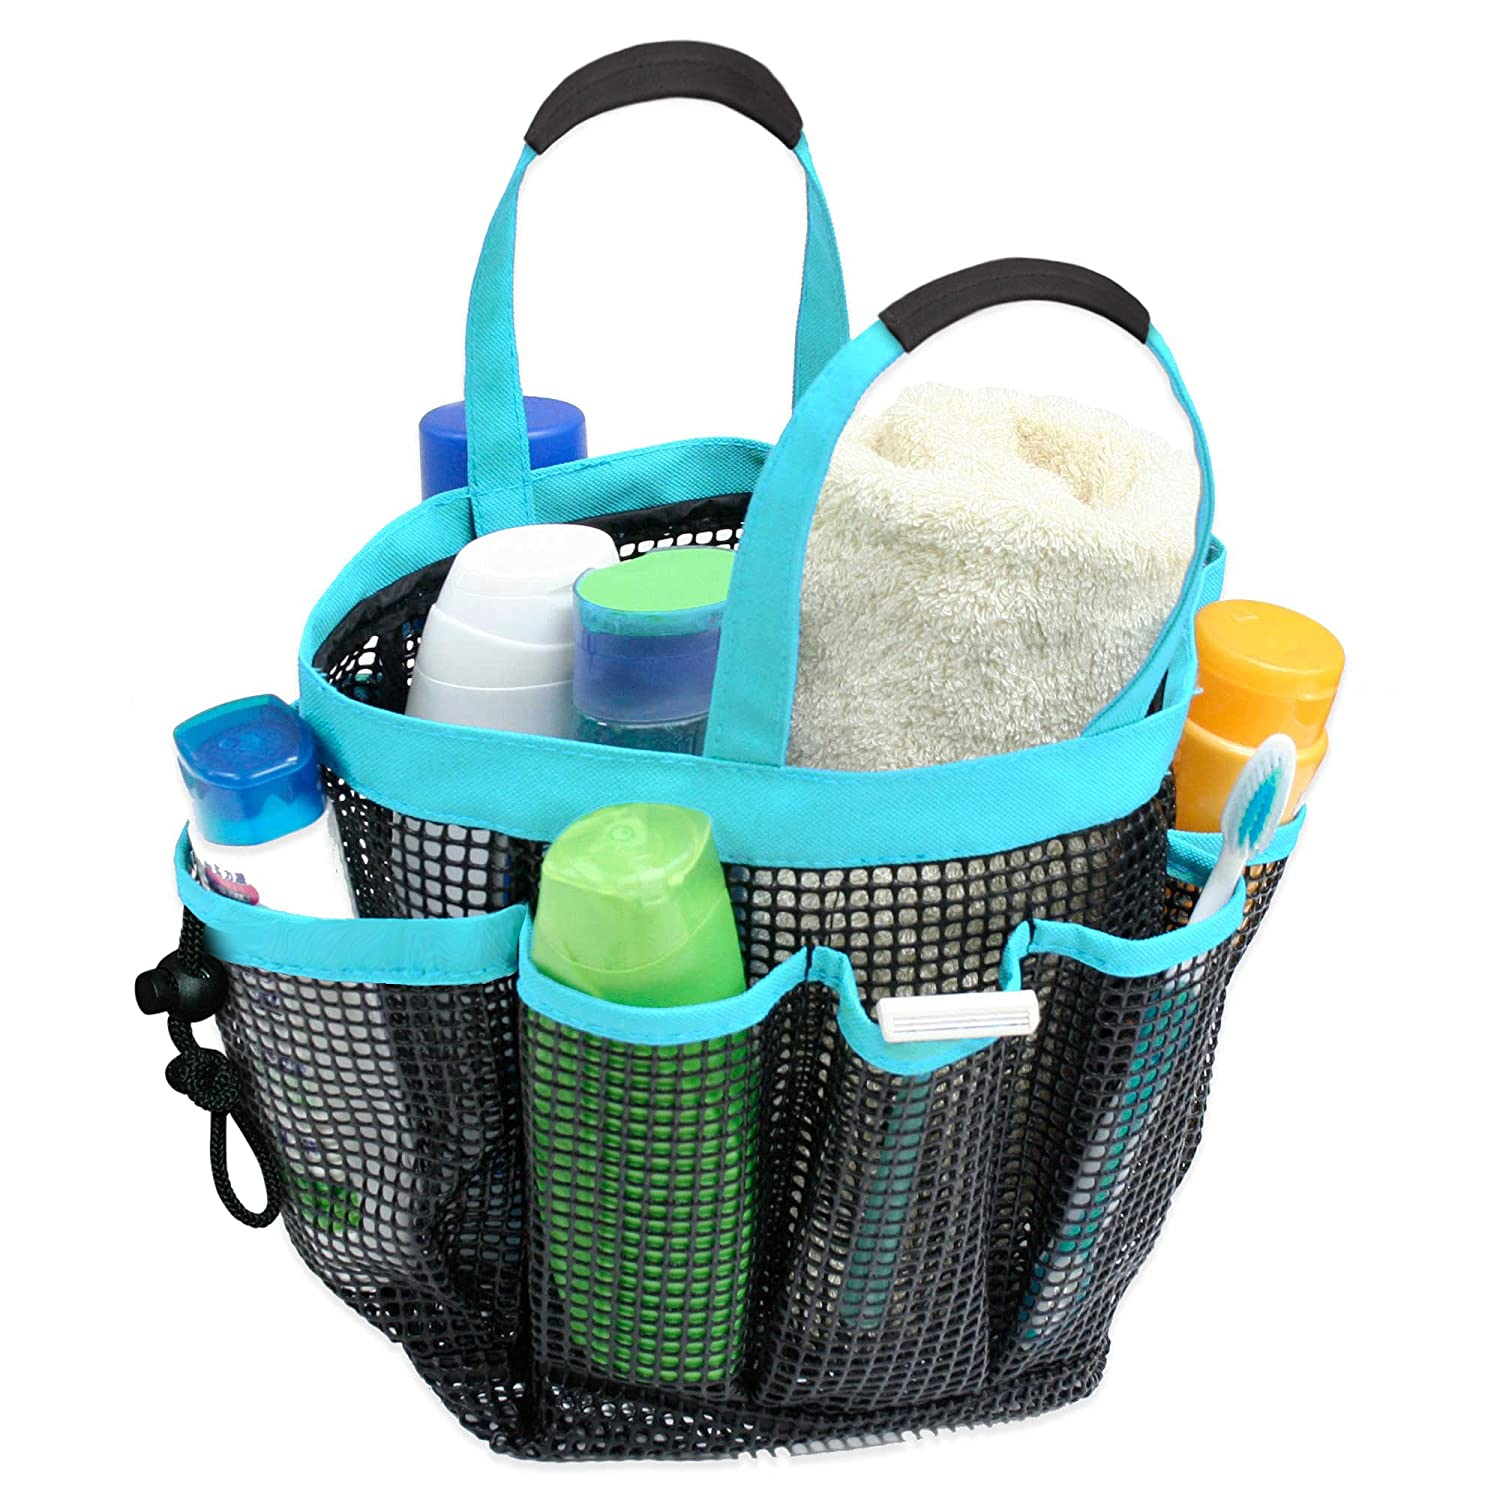 Amazon.com: The Fine Living Company USA - Premium Shower Caddy Tote ...